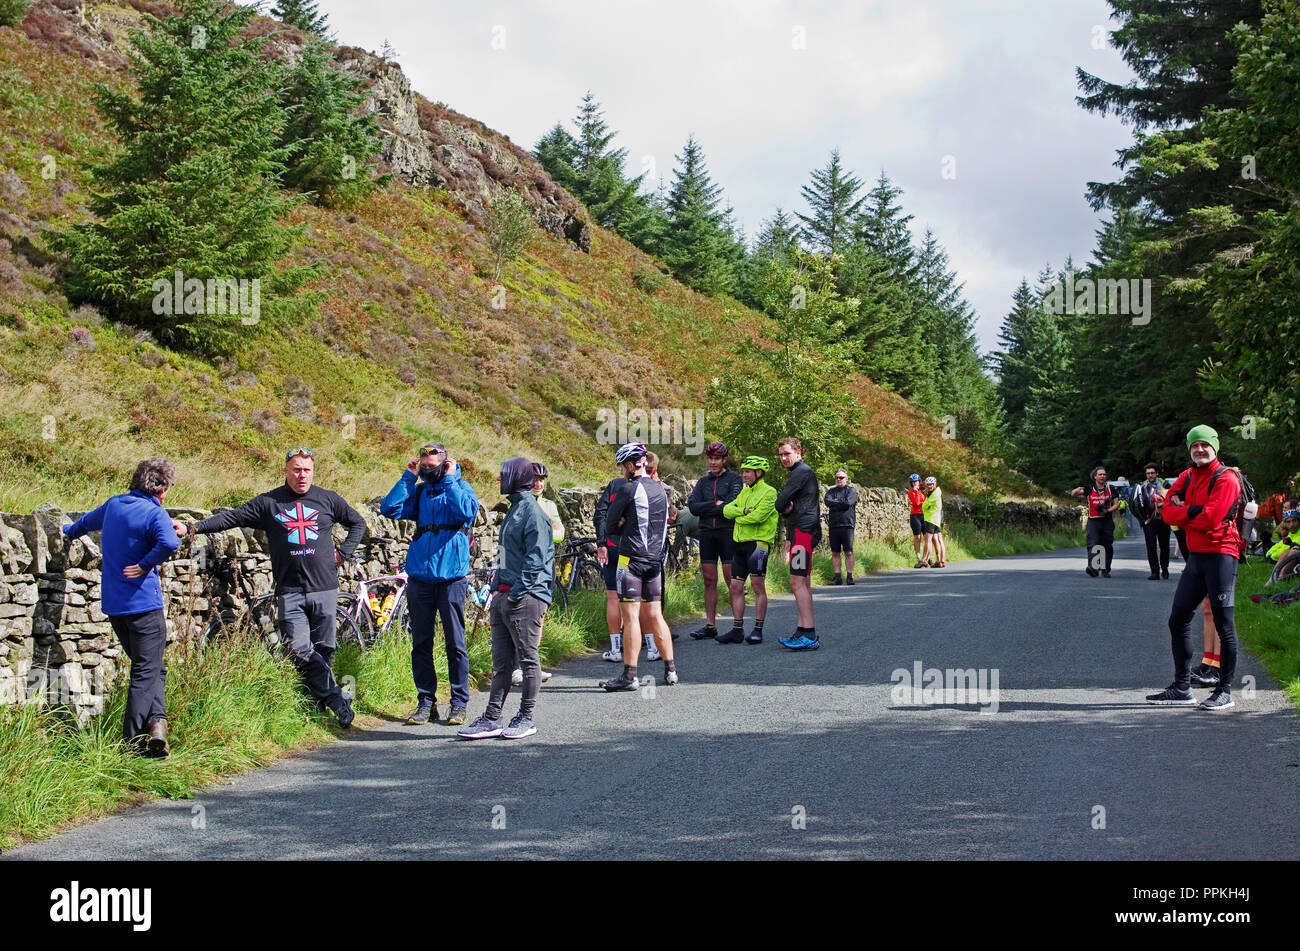 Cyclists and spectators wait patiently near the top of Whinlatter Pass, Cumbria, before the start of the Stage 5 Team Time Trial, Tour of Britain 2018 - Stock Image